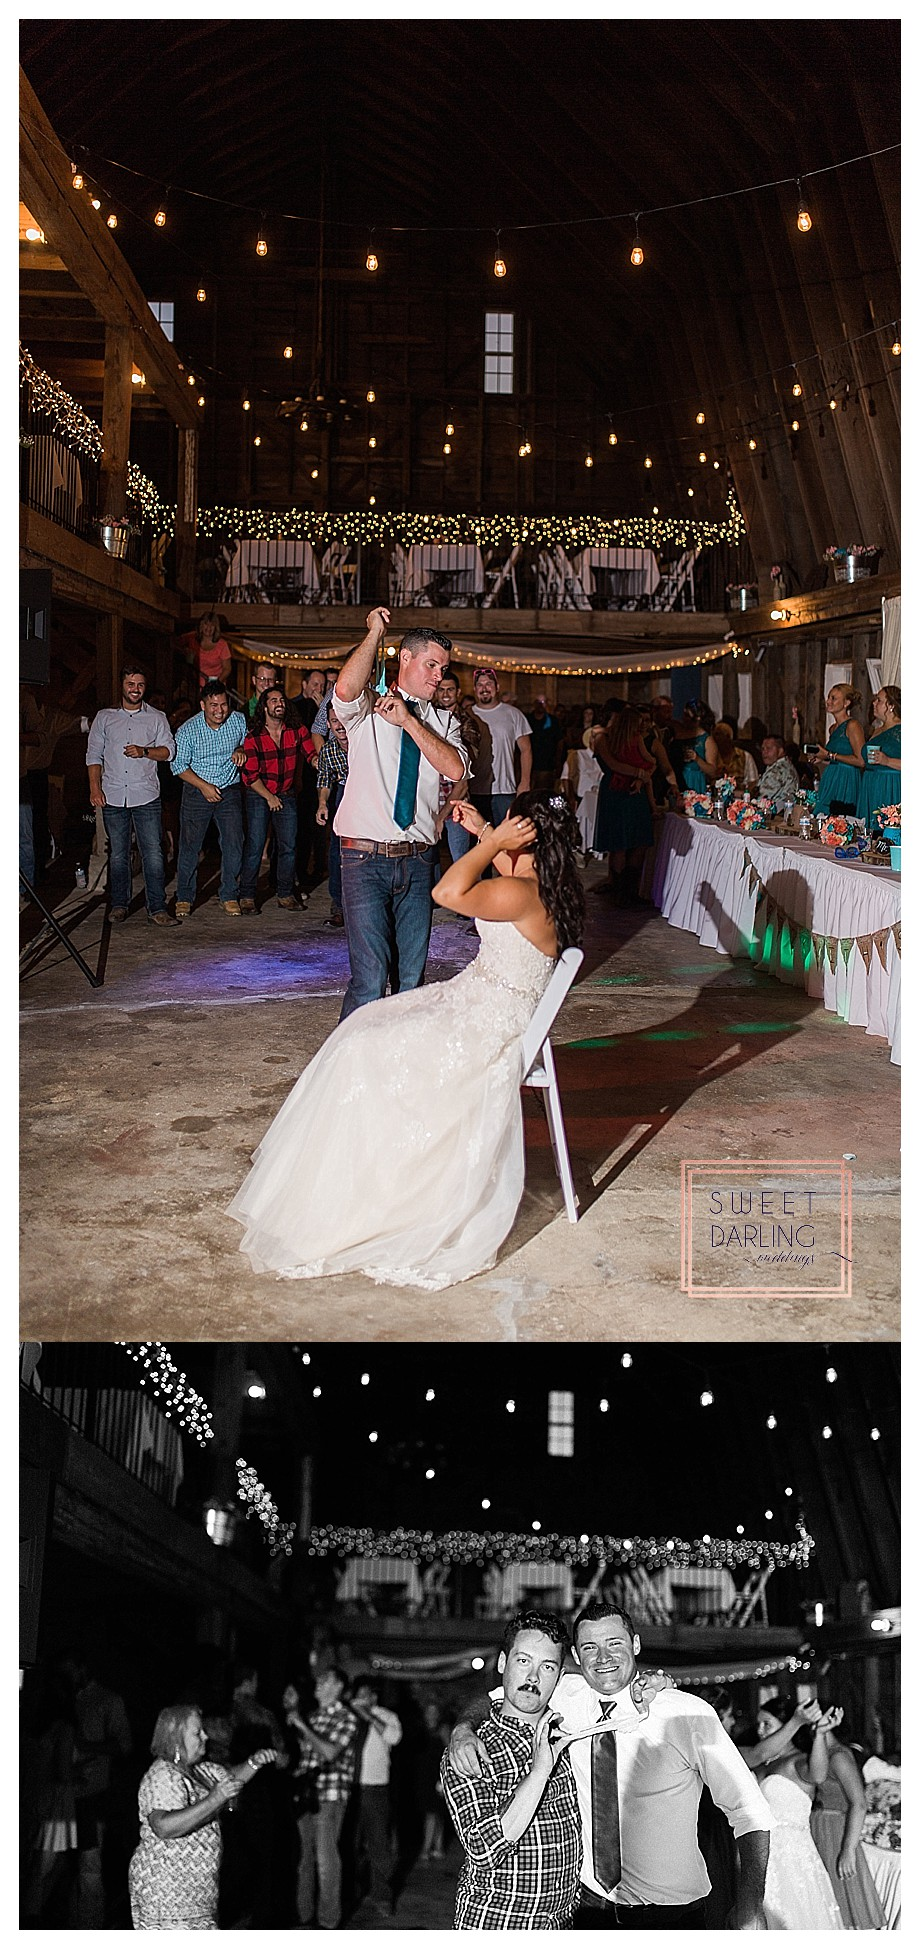 wedding-barn-farm-horses-sparkler-exit-Engelbrecht-Farm-Paxton-Illinois-Sweet-Darling-Weddings-Photographer_0500